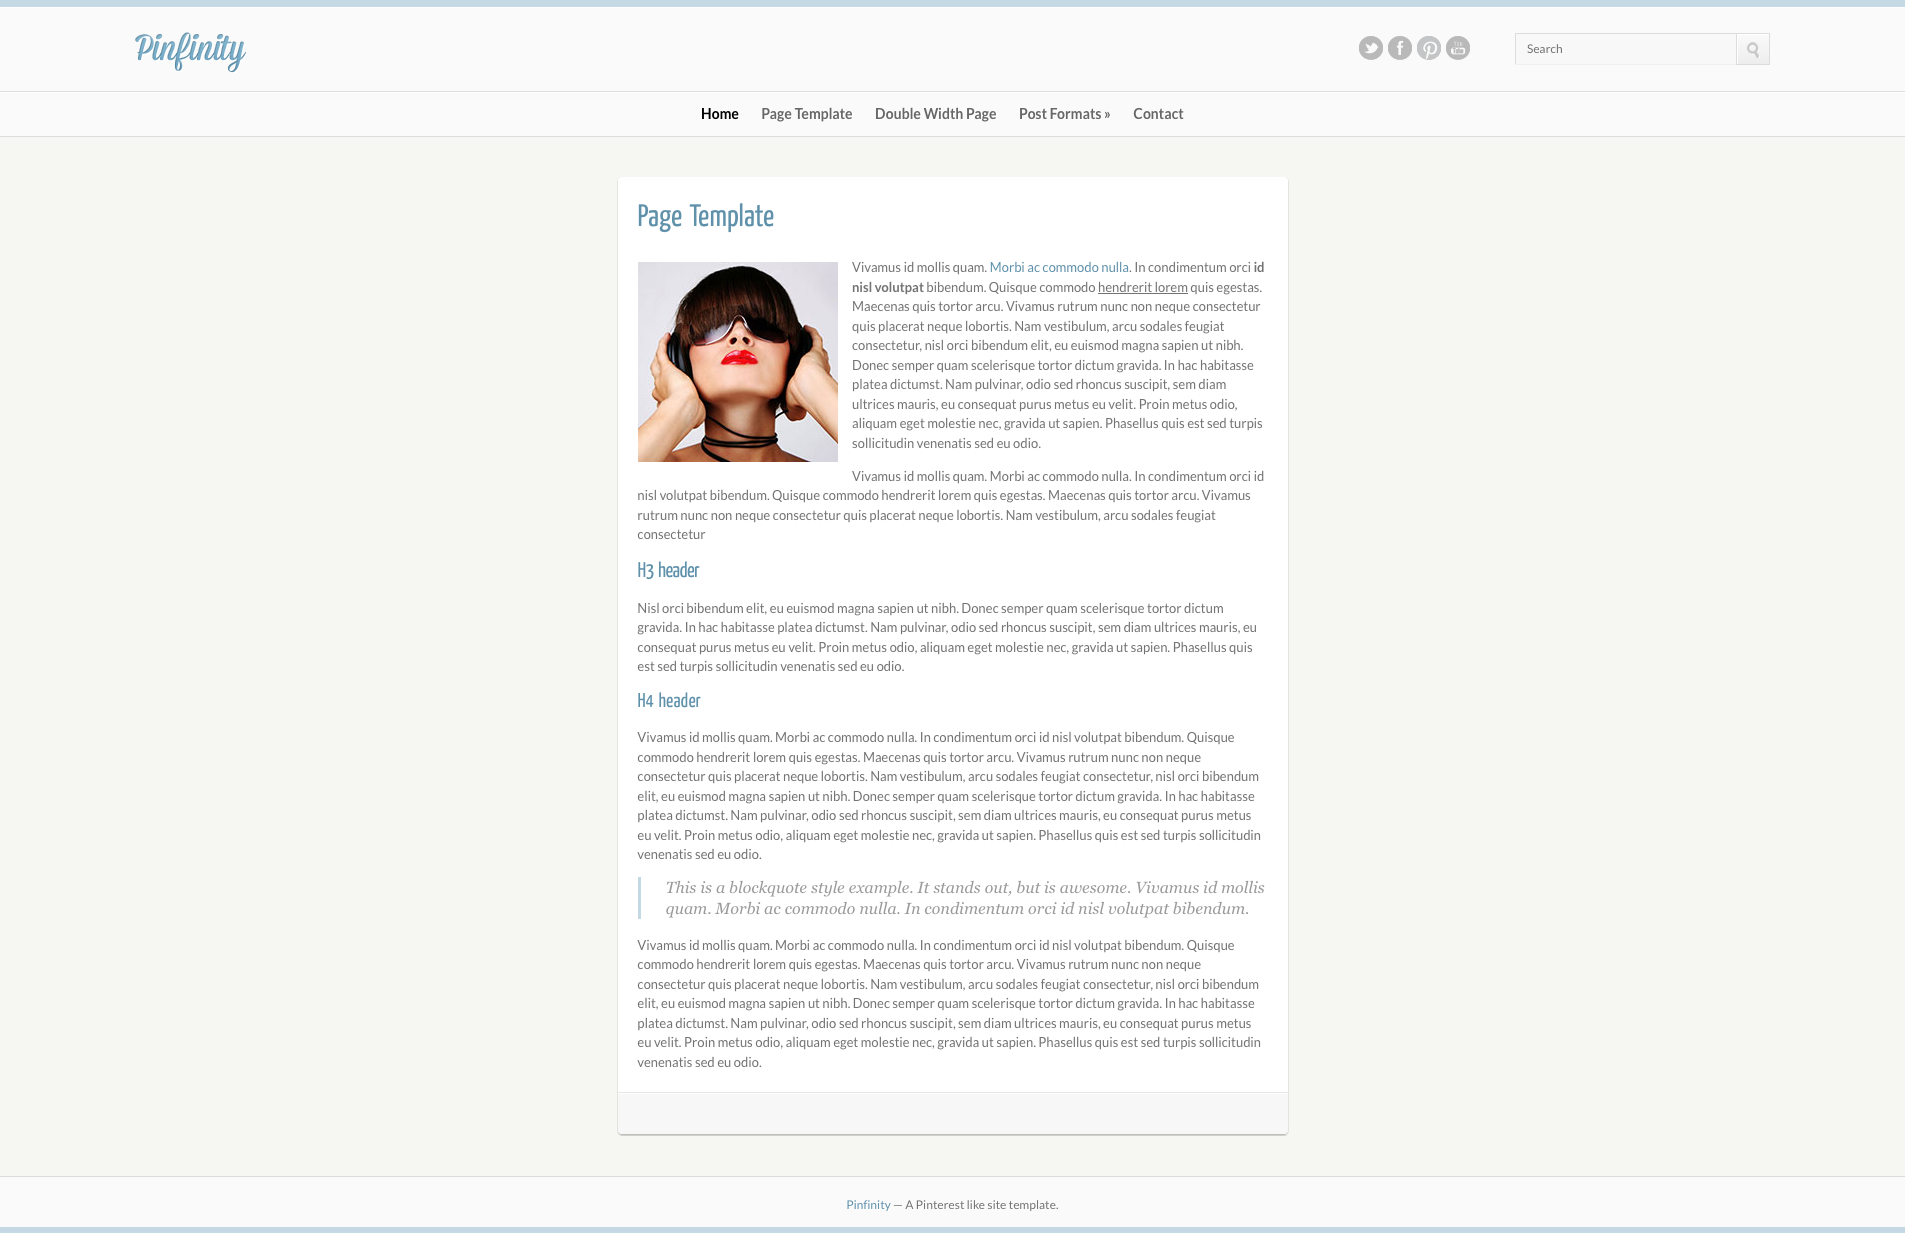 Pinfinity Responsive Tumblr-Like Site Template